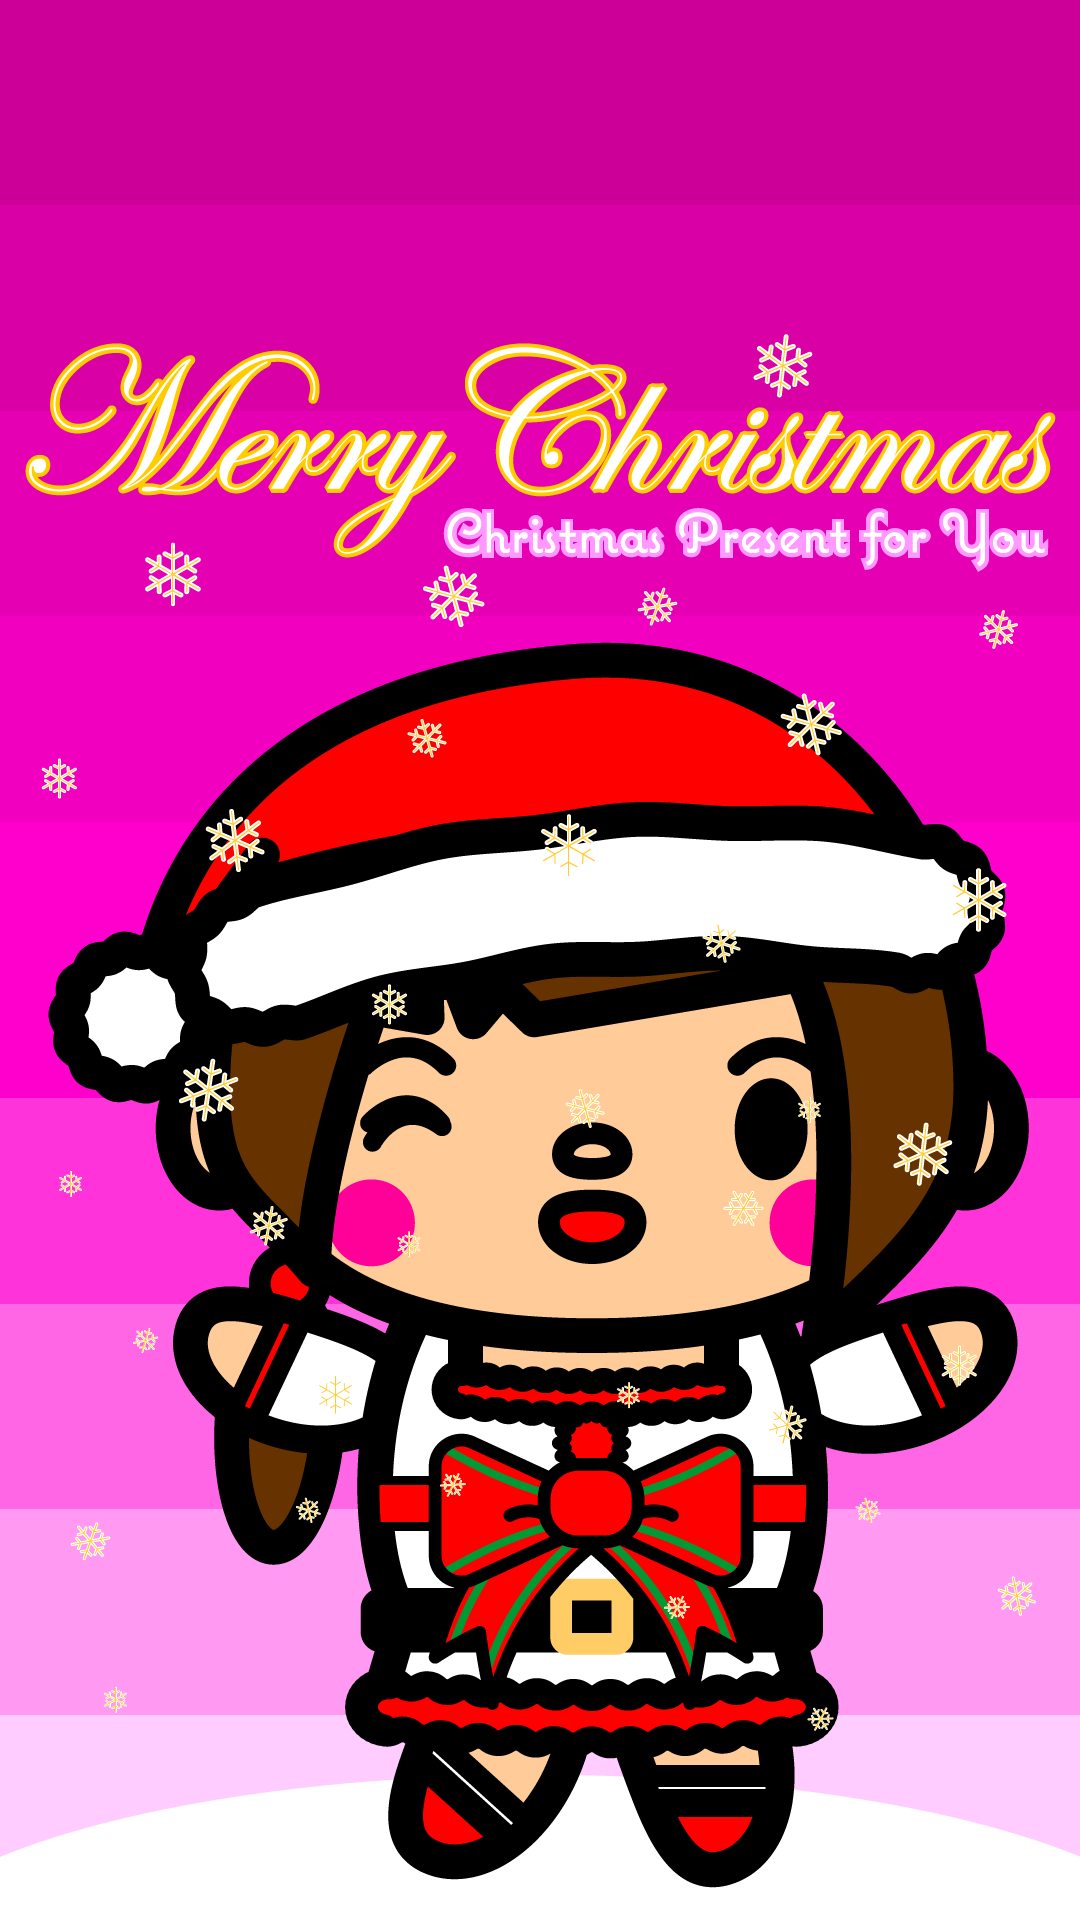 wallpaper6_christmas-santawoman02-pink-iphone